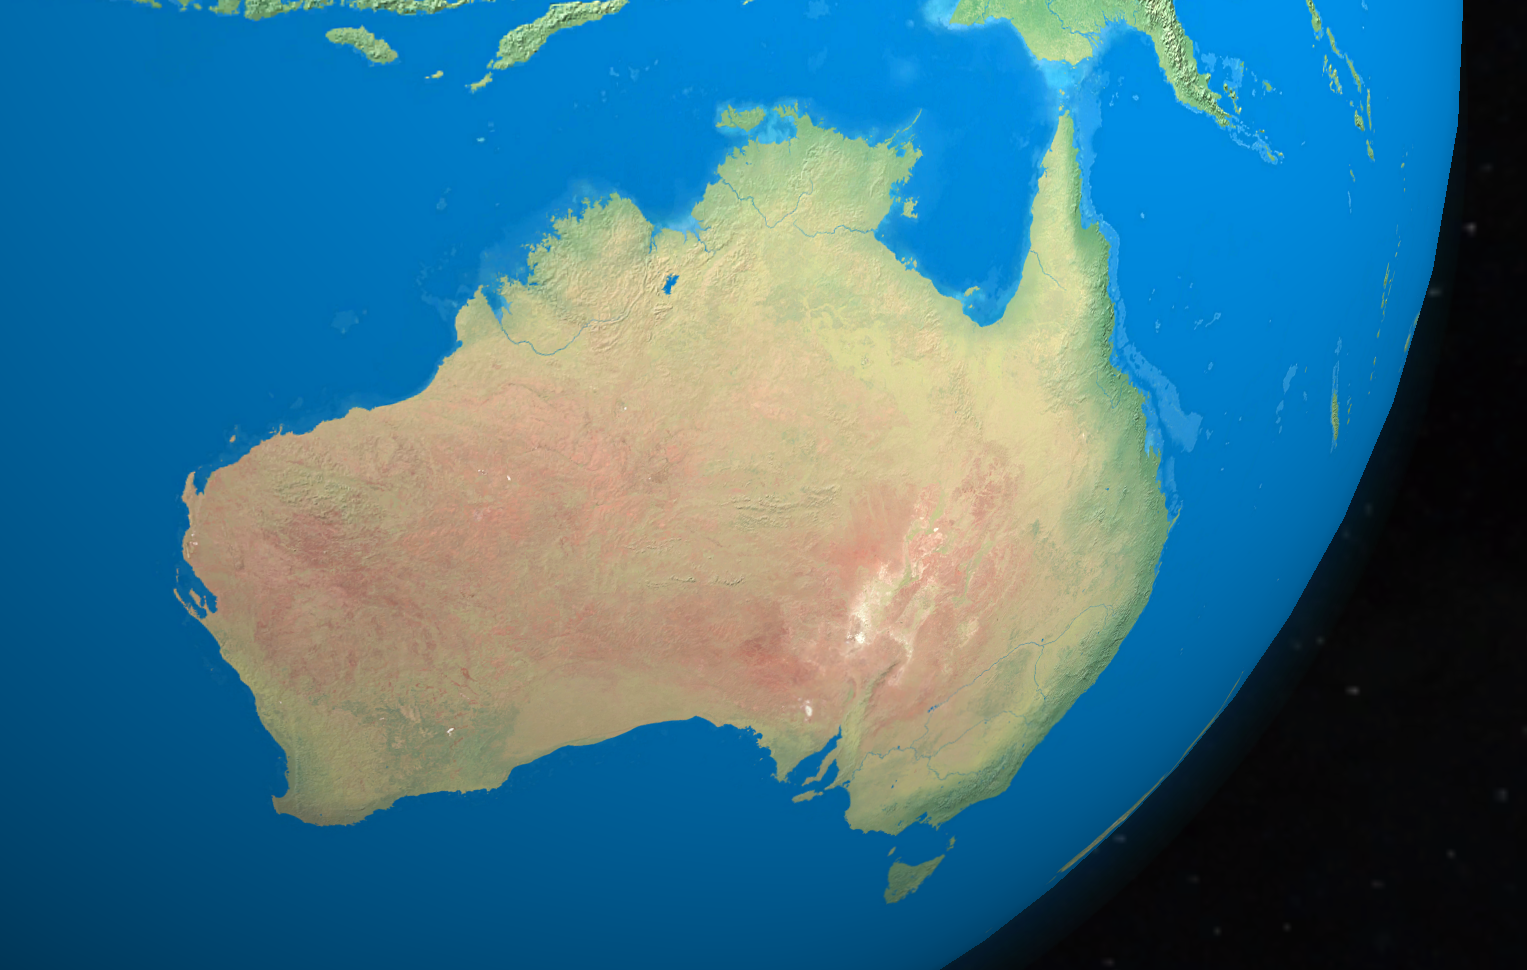 Australia_space_view By Globe Master 3D - CC BY 3.0